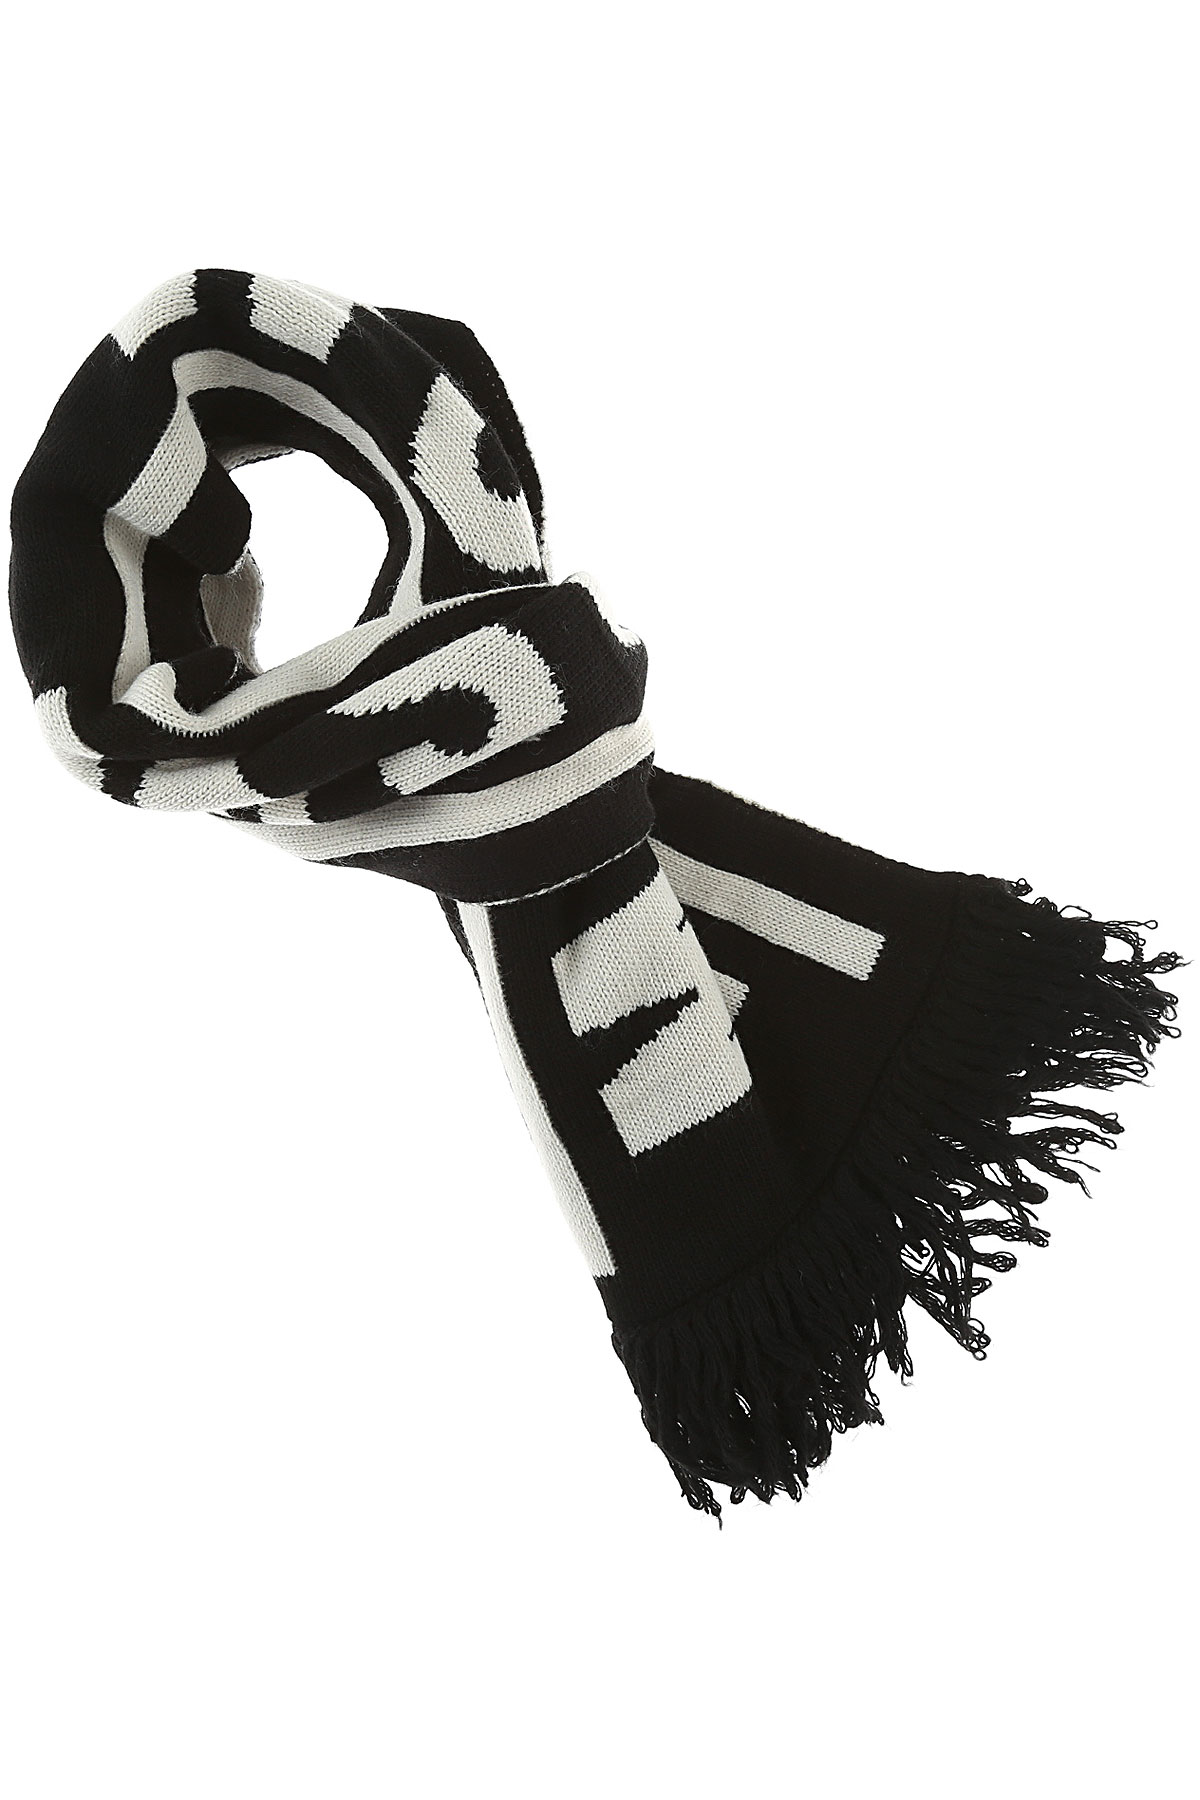 MSGM Kids Scarves for Boys, Black, Acrylic, 2017